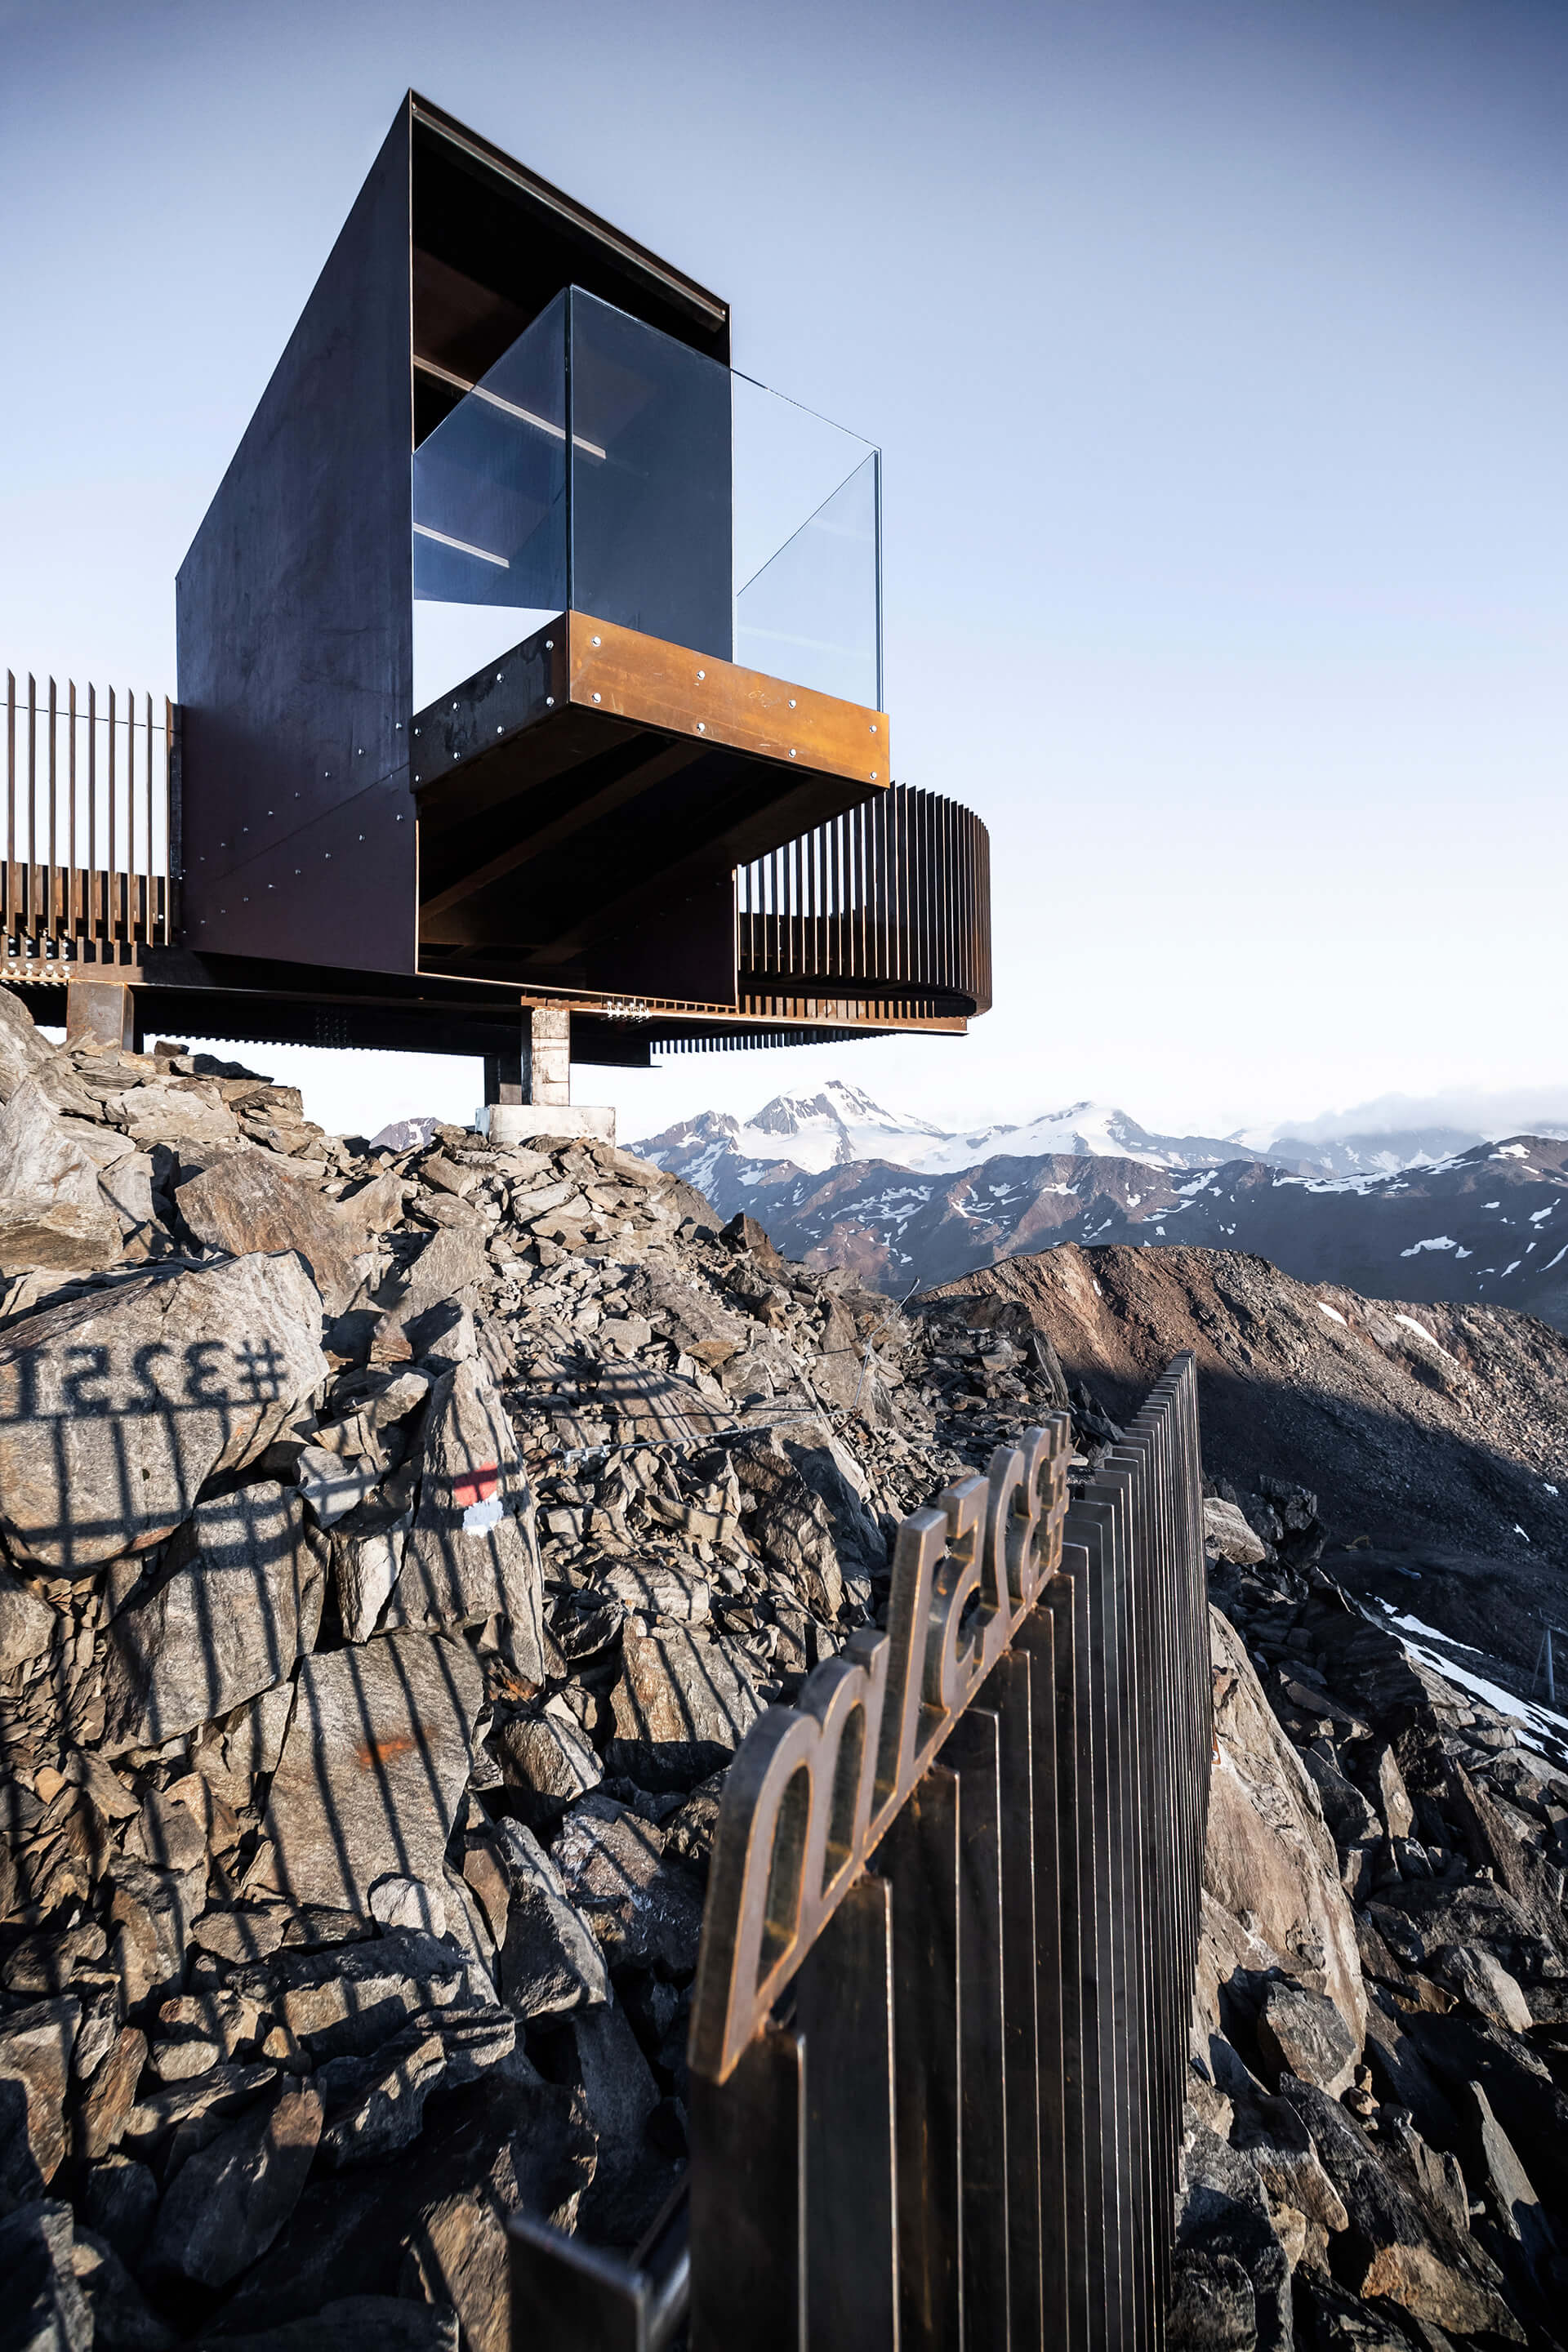 The observation deck hovers over the ground to incorporate a preexisting summit cross | Ötzi Peak 3251m | noa* network of architecture | STIRworld